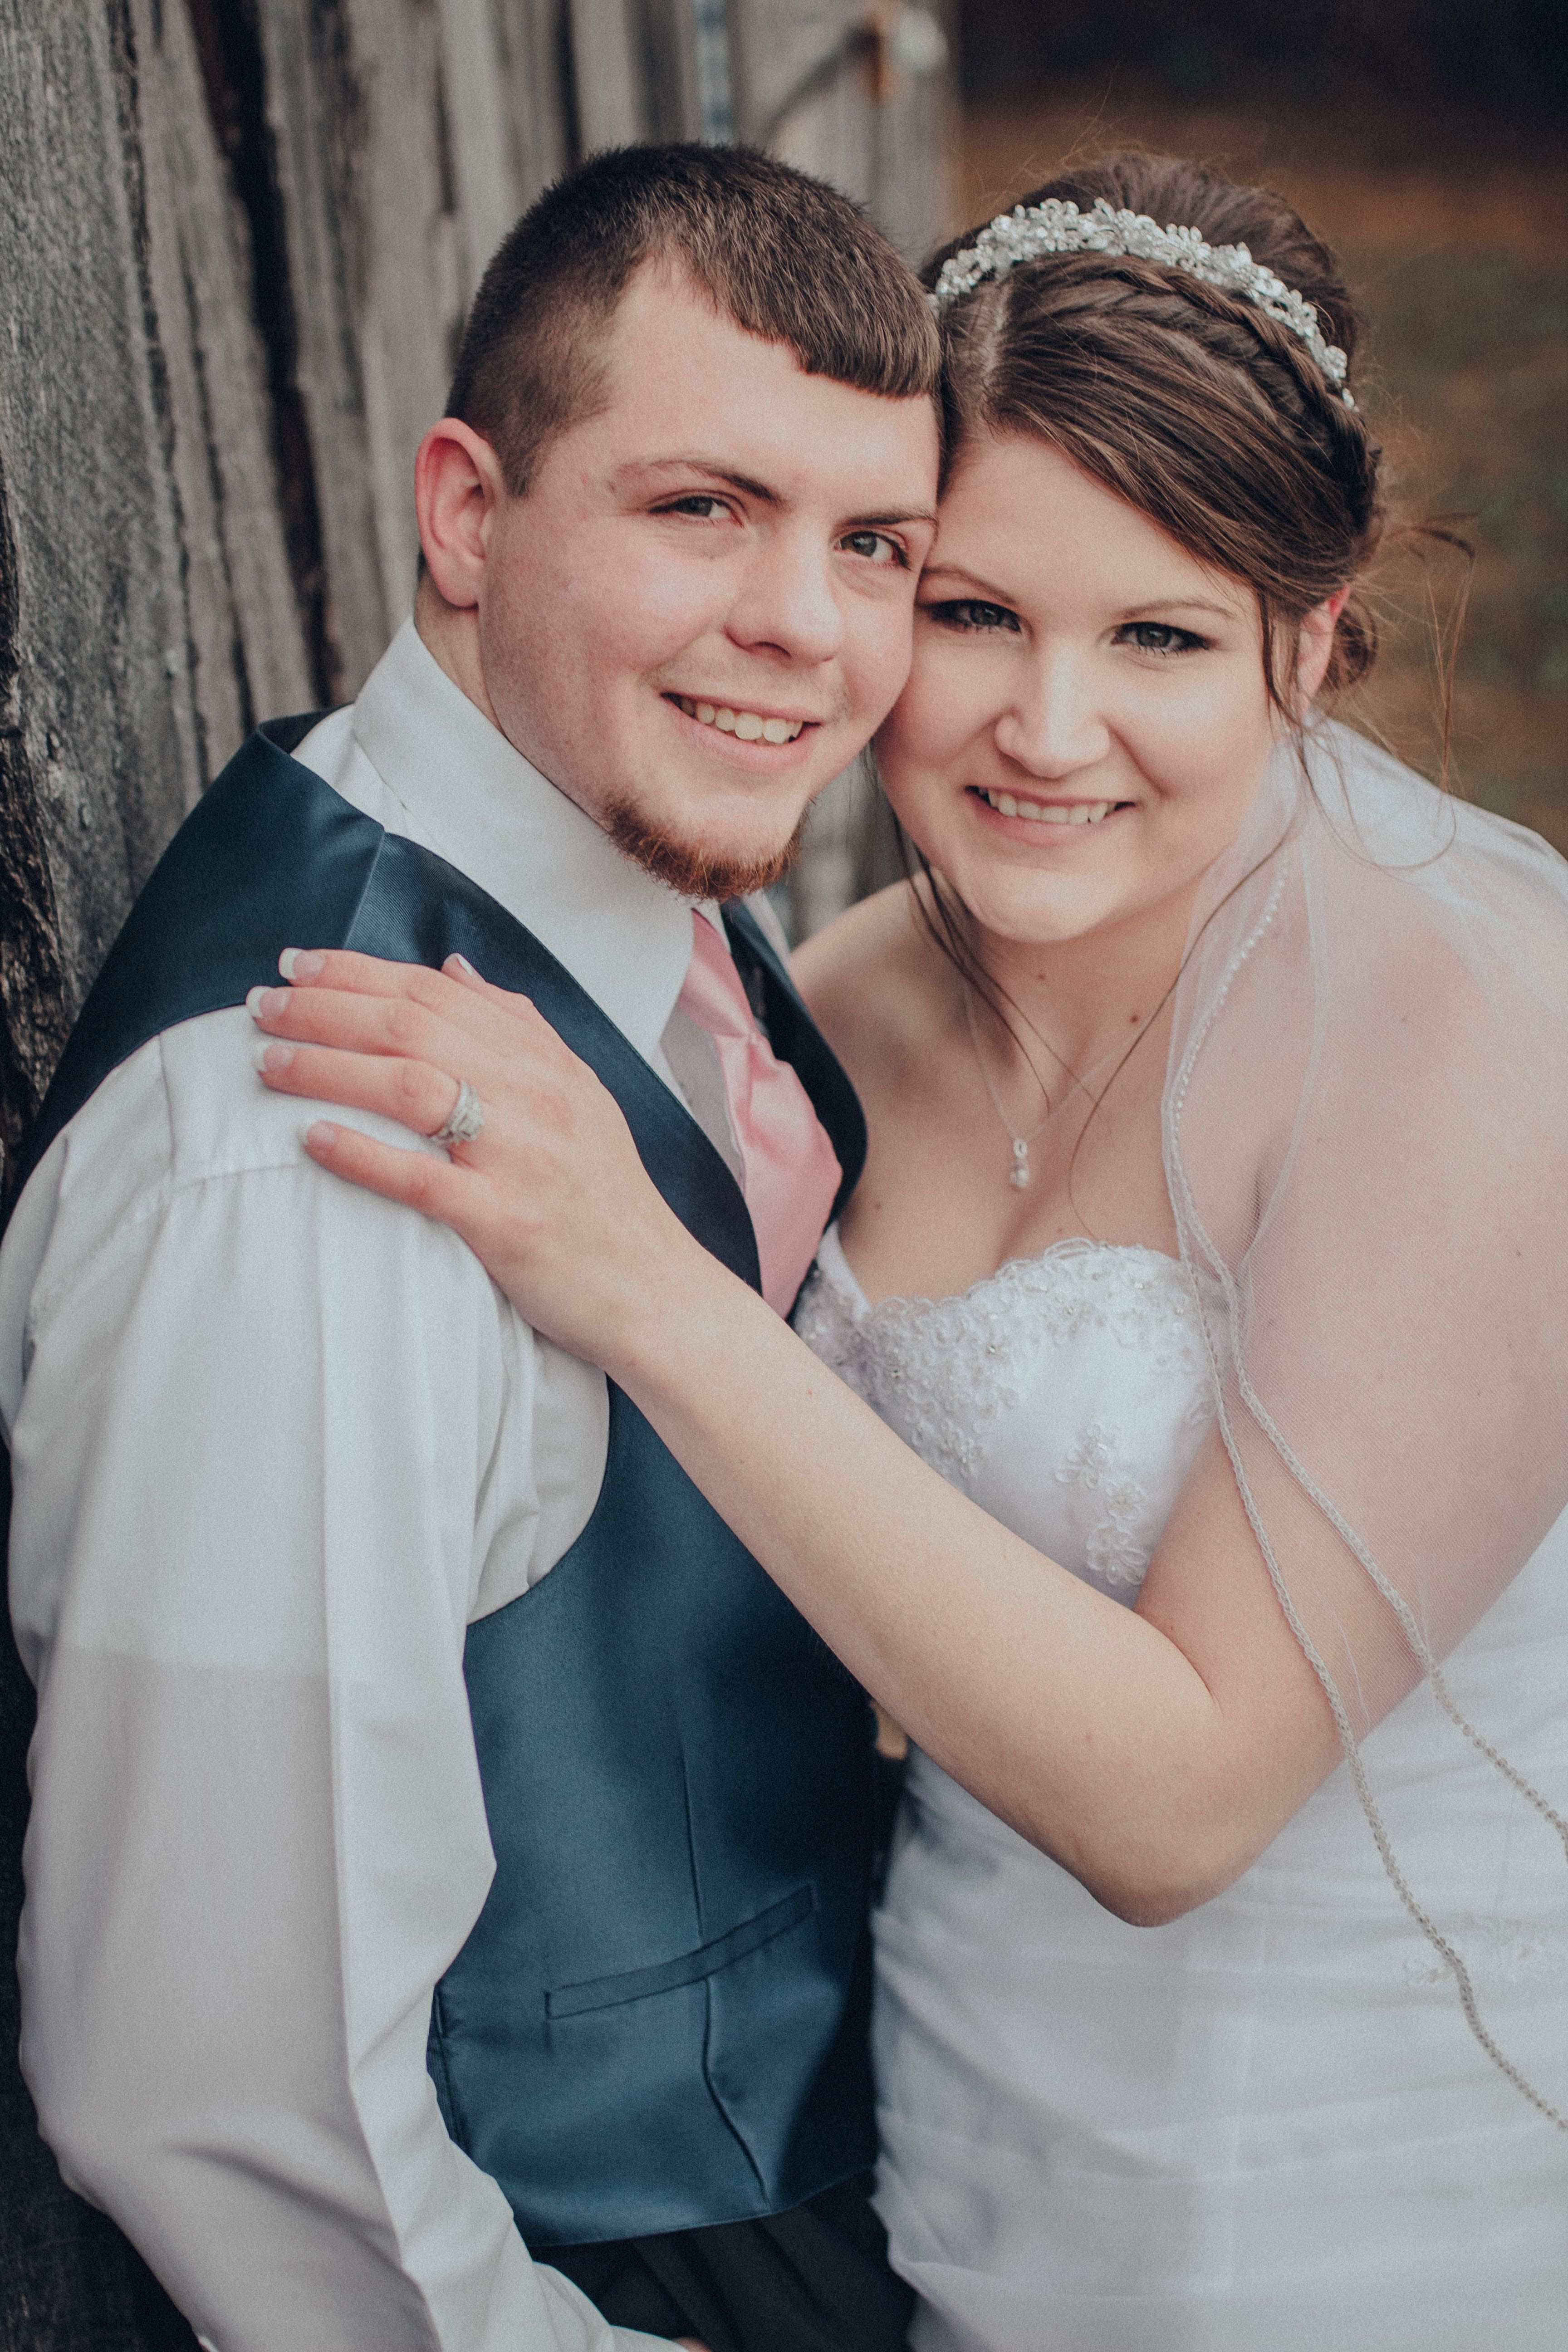 Wedding Photography By Negative Image Springfield And Lebanon Missouri Brideandgroom